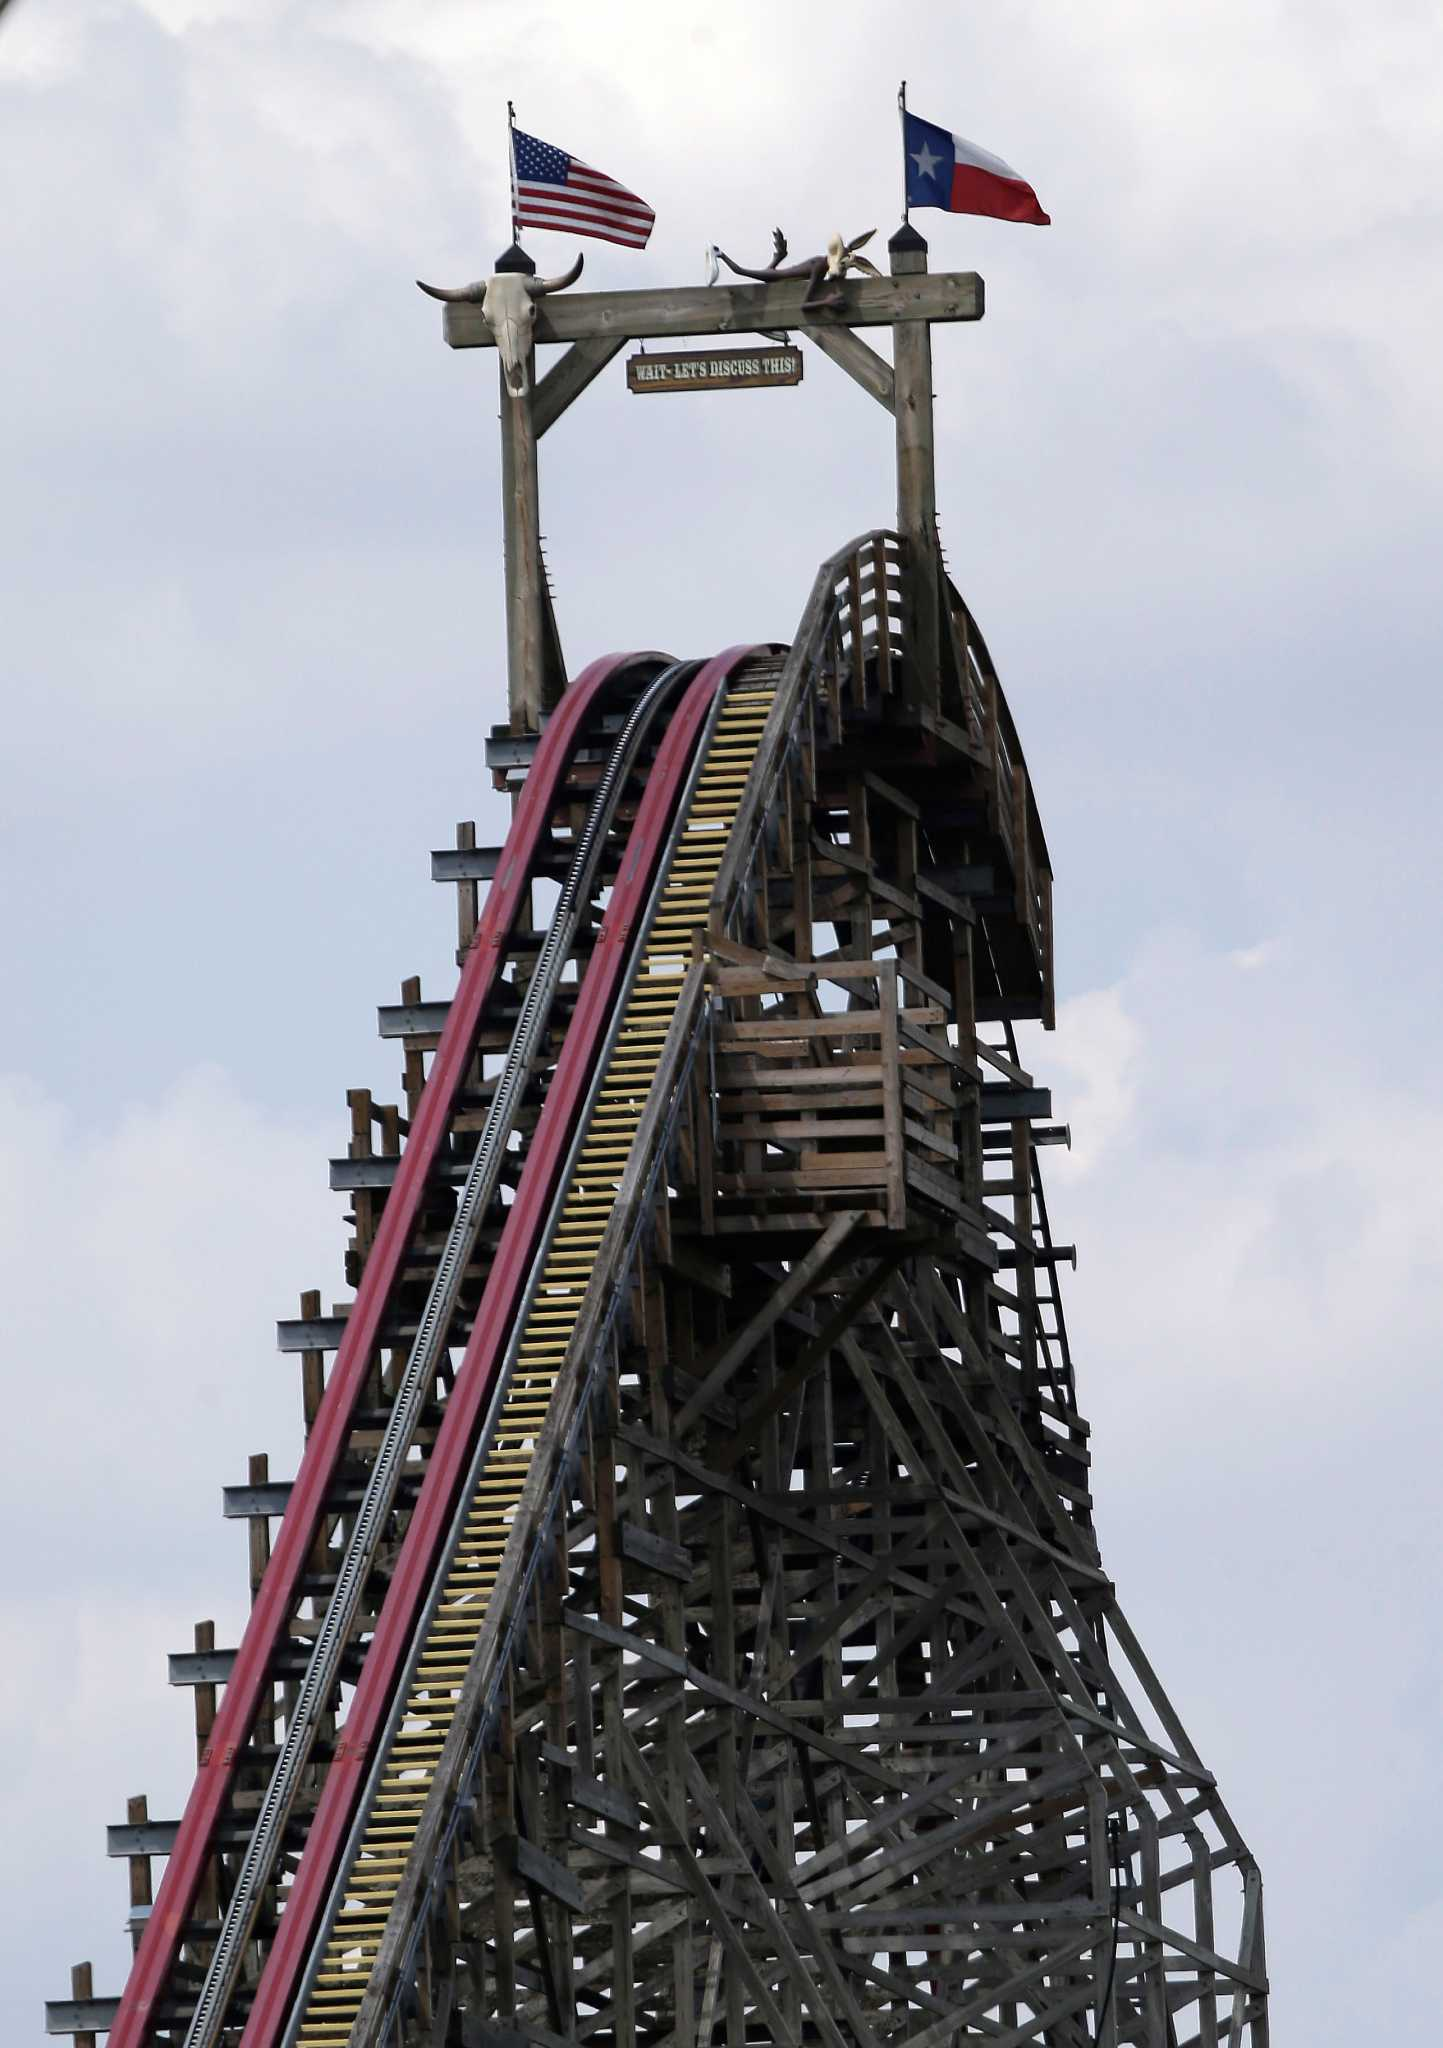 Woman's Six Flags roller coaster death probed - news.yahoo.com